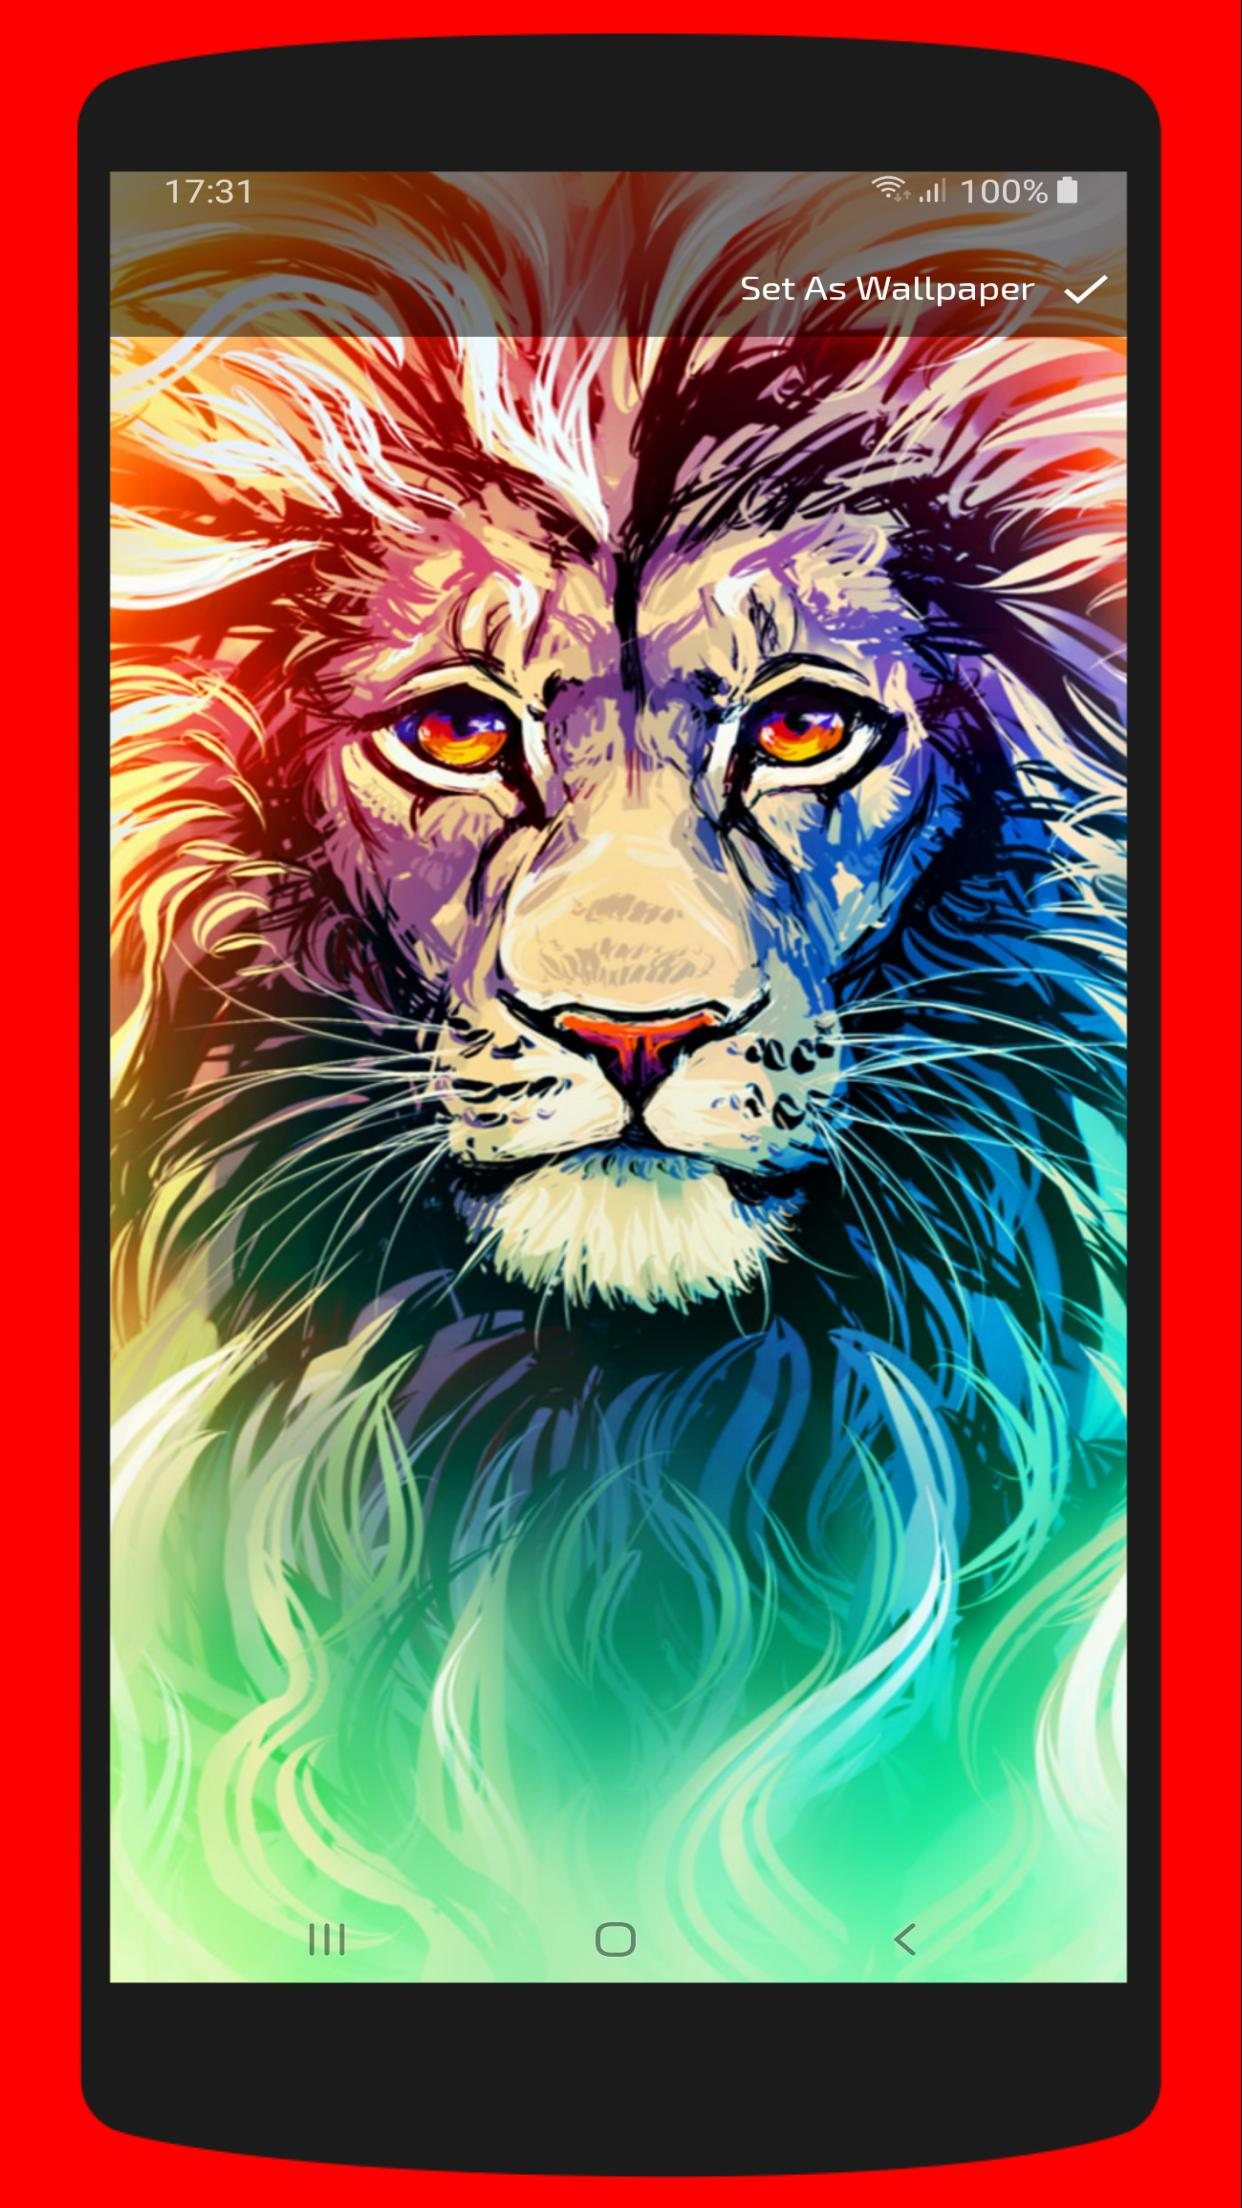 Cool Lion Wallpaper Free Hd 4k Backgrounds For Android Apk Download